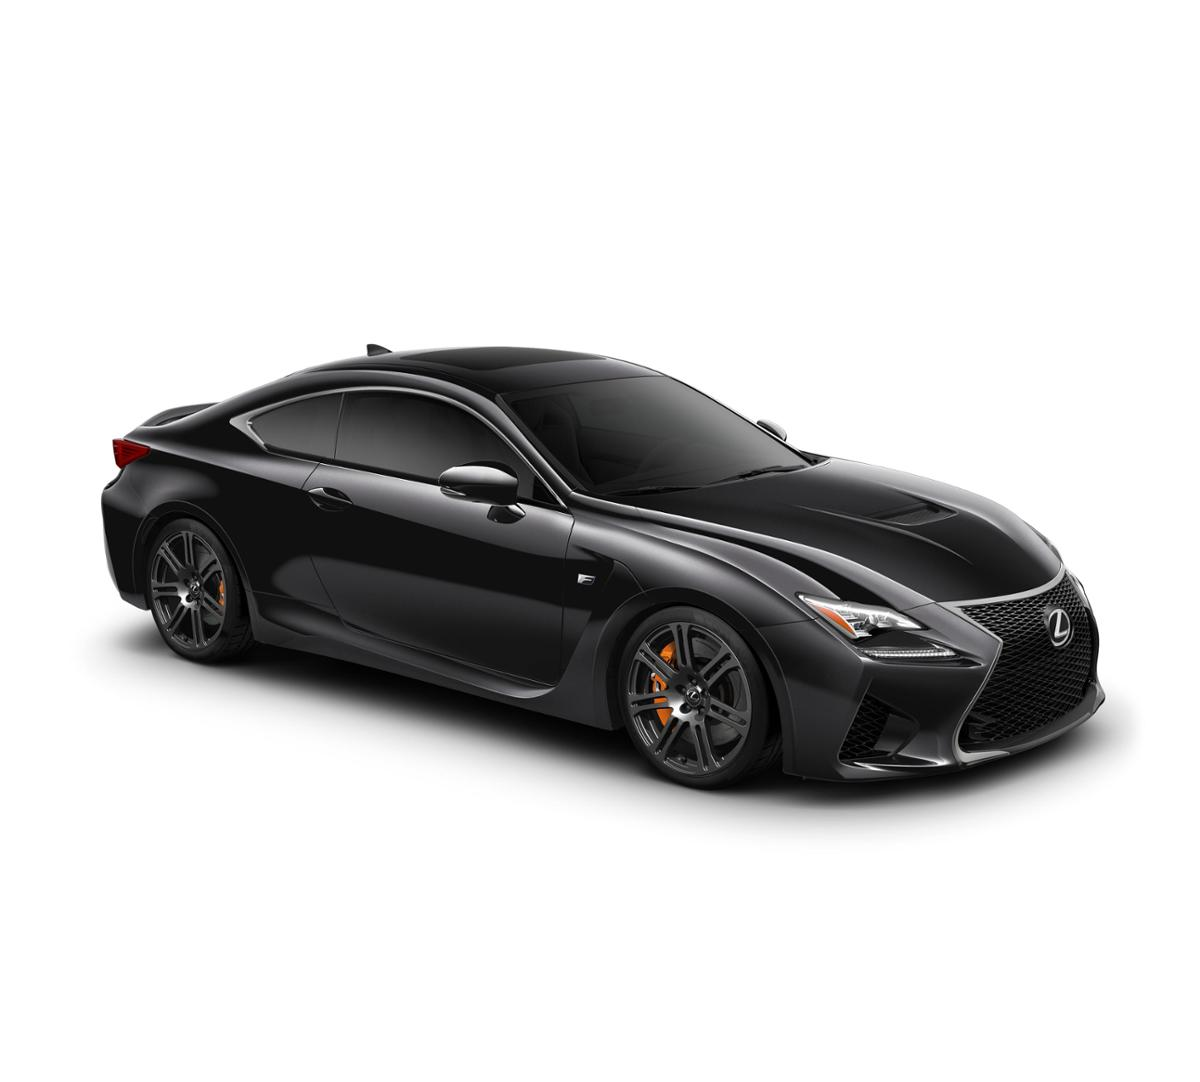 2017 Lexus Rc Exterior: Towson Caviar 2017 Lexus RC F: Certified Car For Sale -TY22224